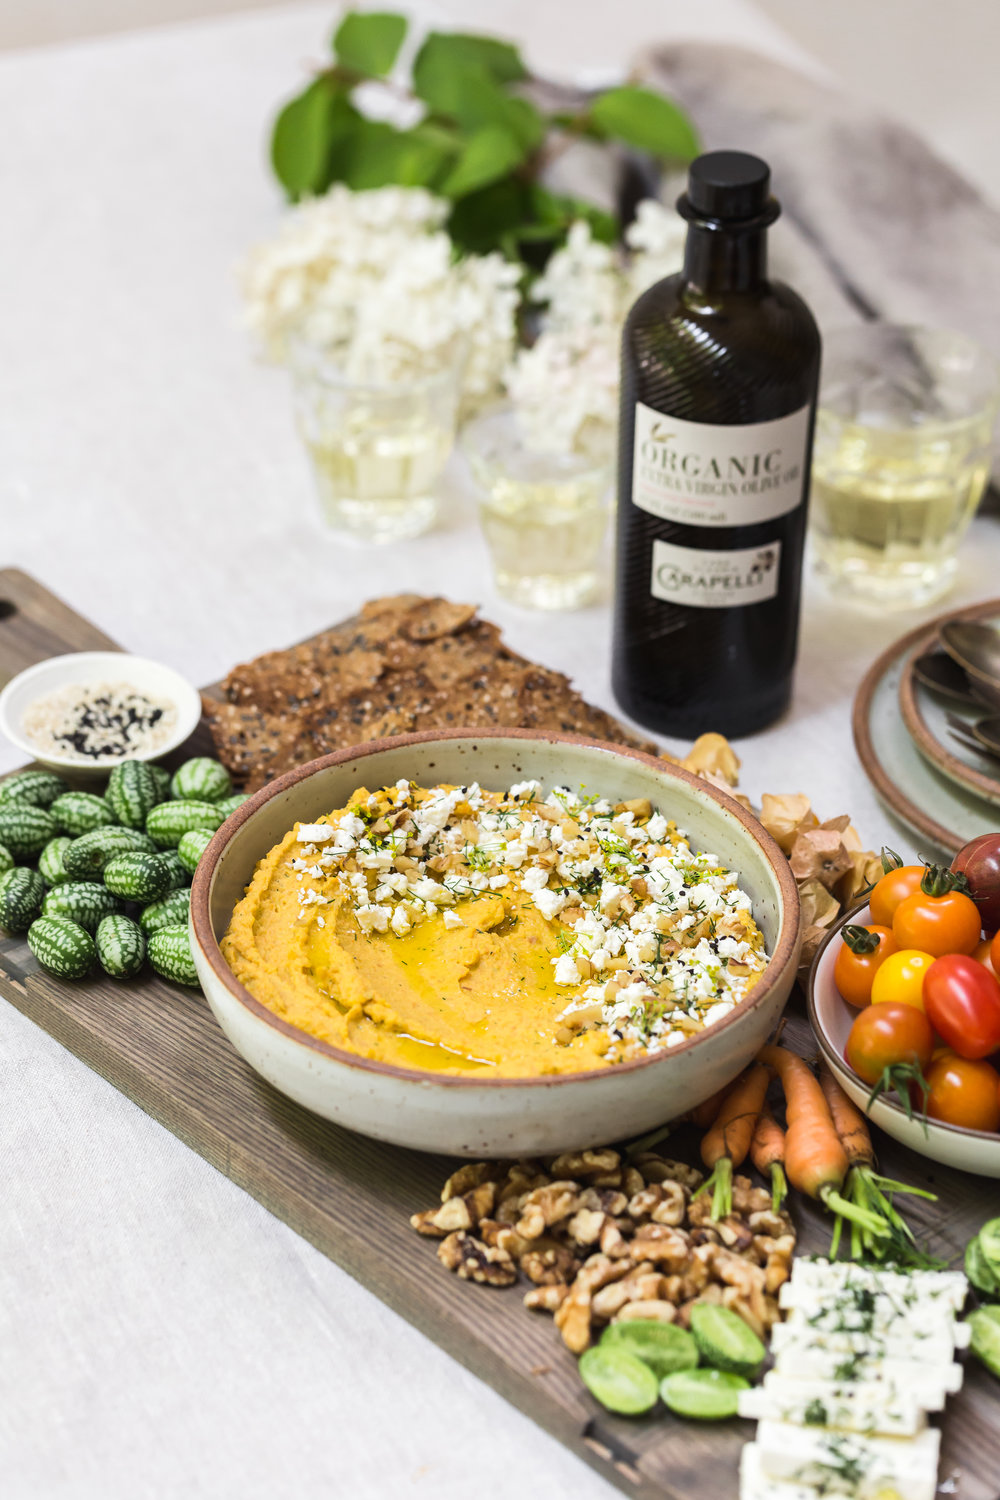 Roasted Carrot Hummus with Feta, Dill, and Walnuts